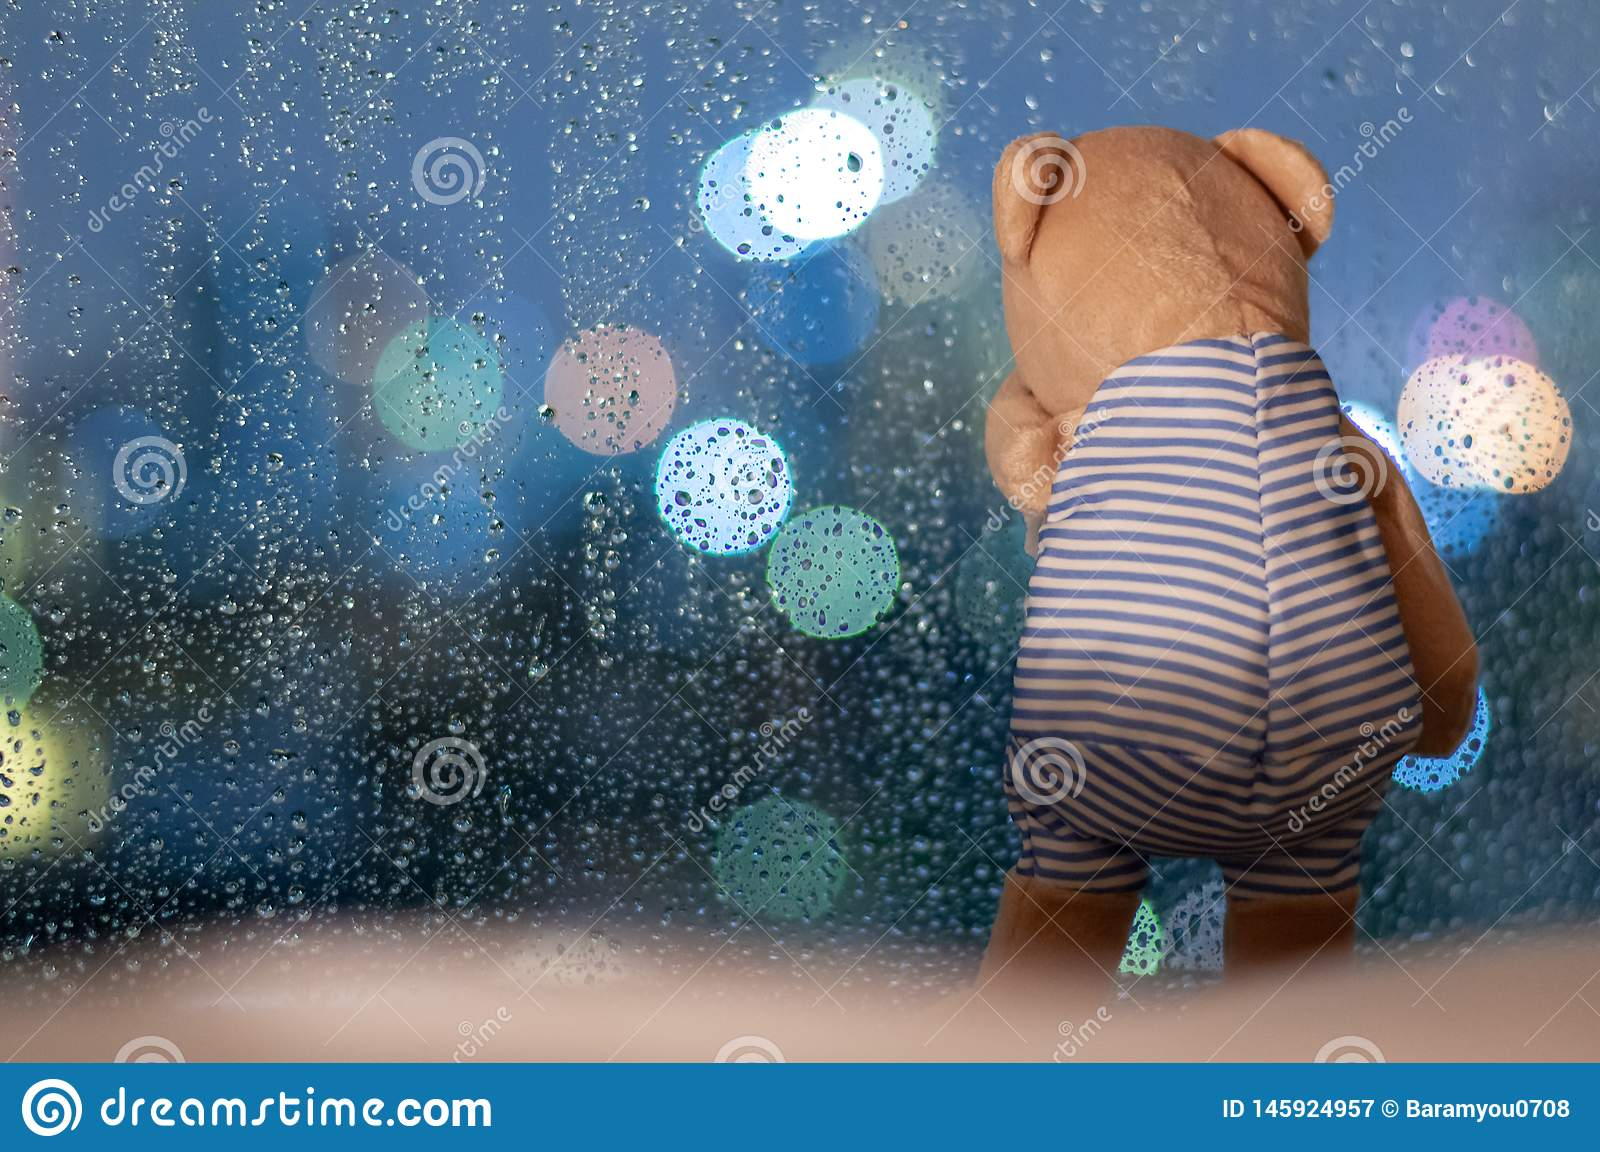 Sadly Teddy Bear crying at window in rainy day